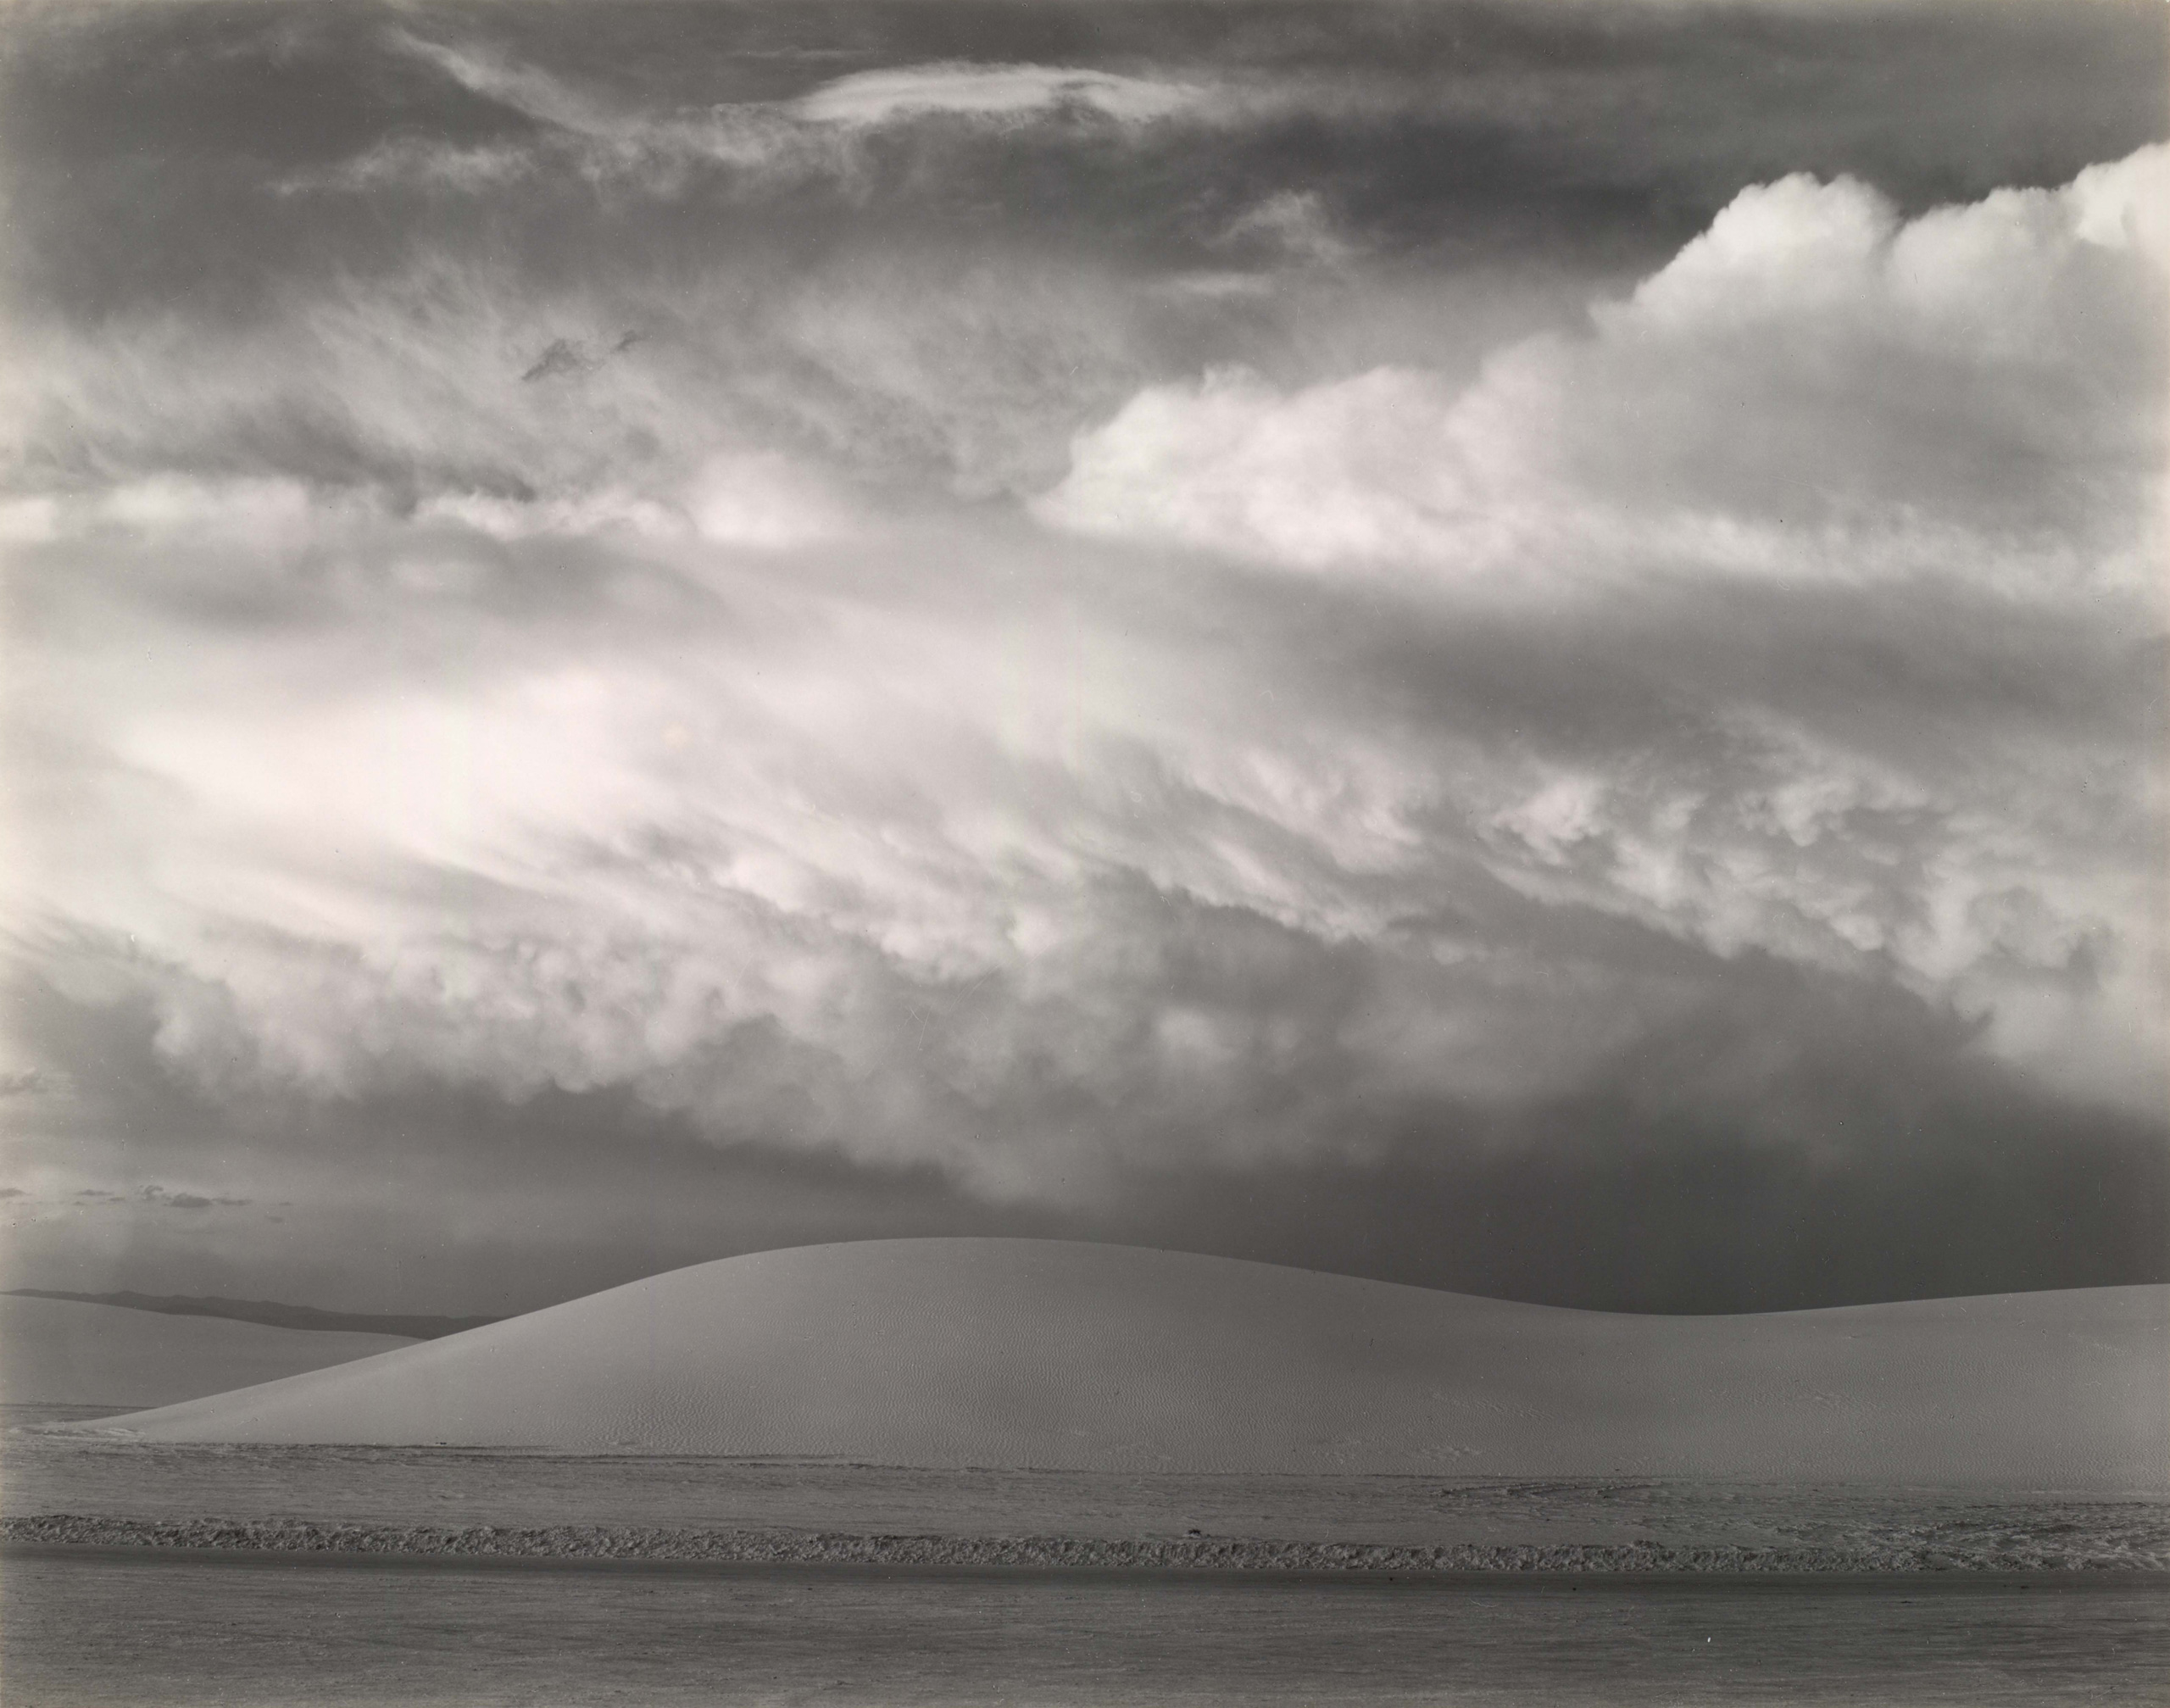 White Sands, New Mexico, 1941